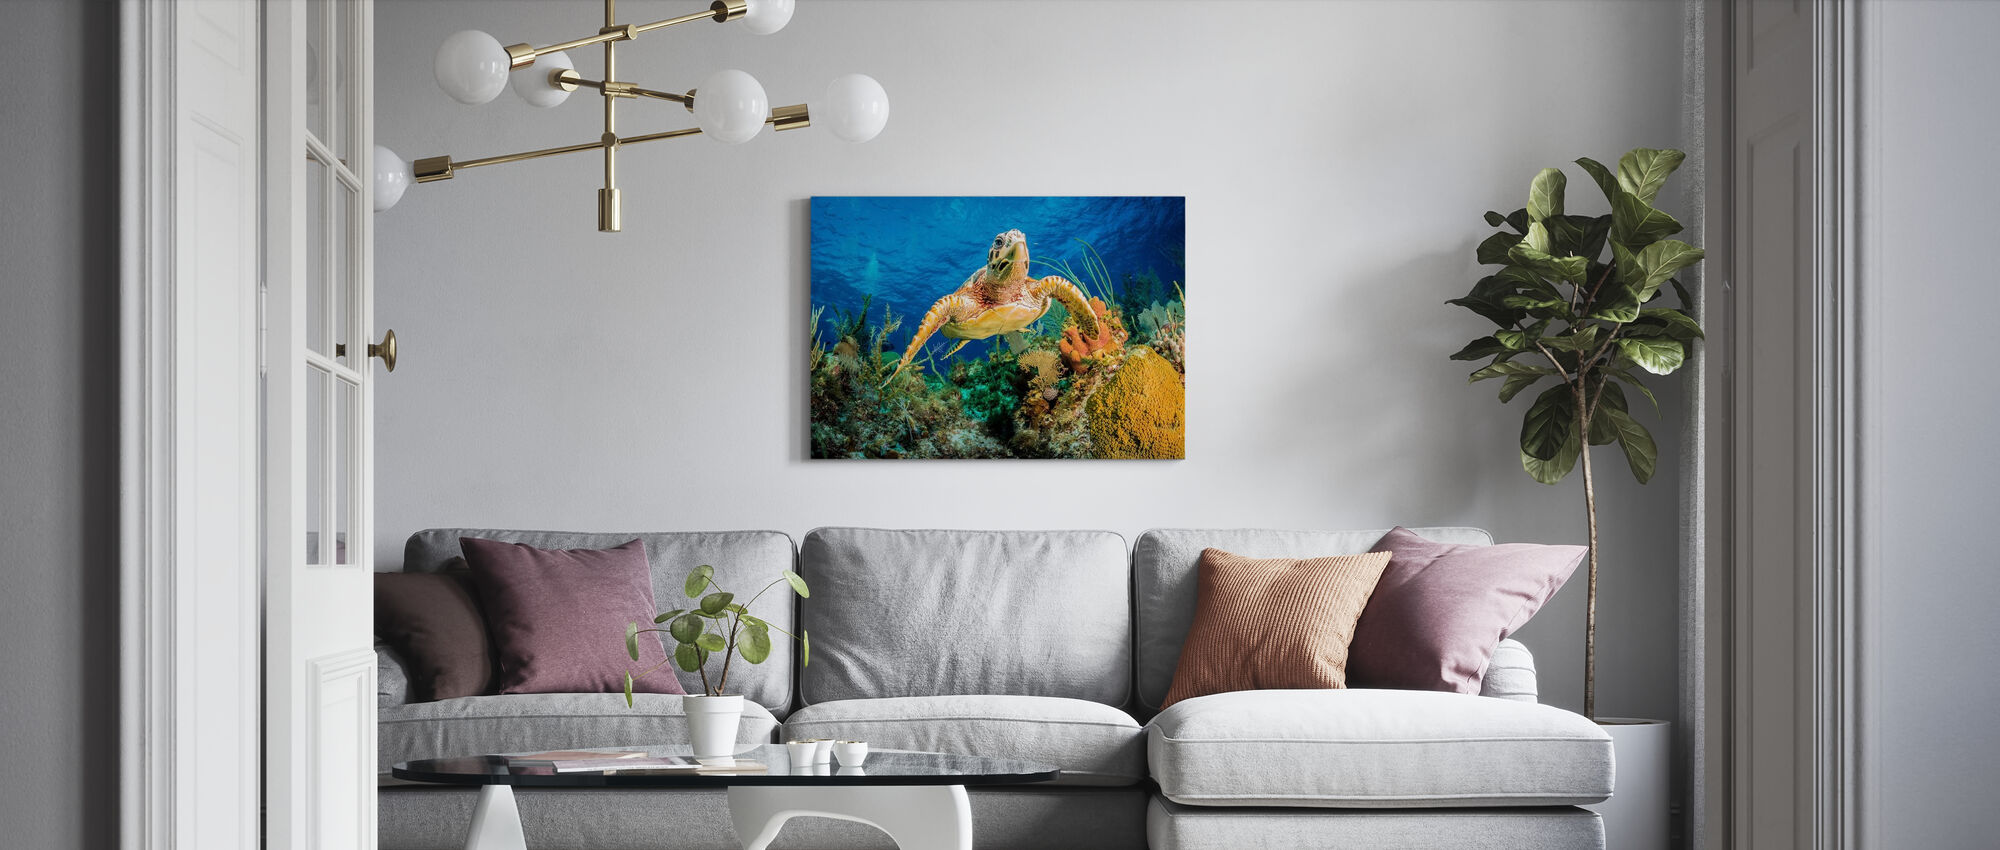 Hawksbill Turtle Swimming - Canvas print - Living Room